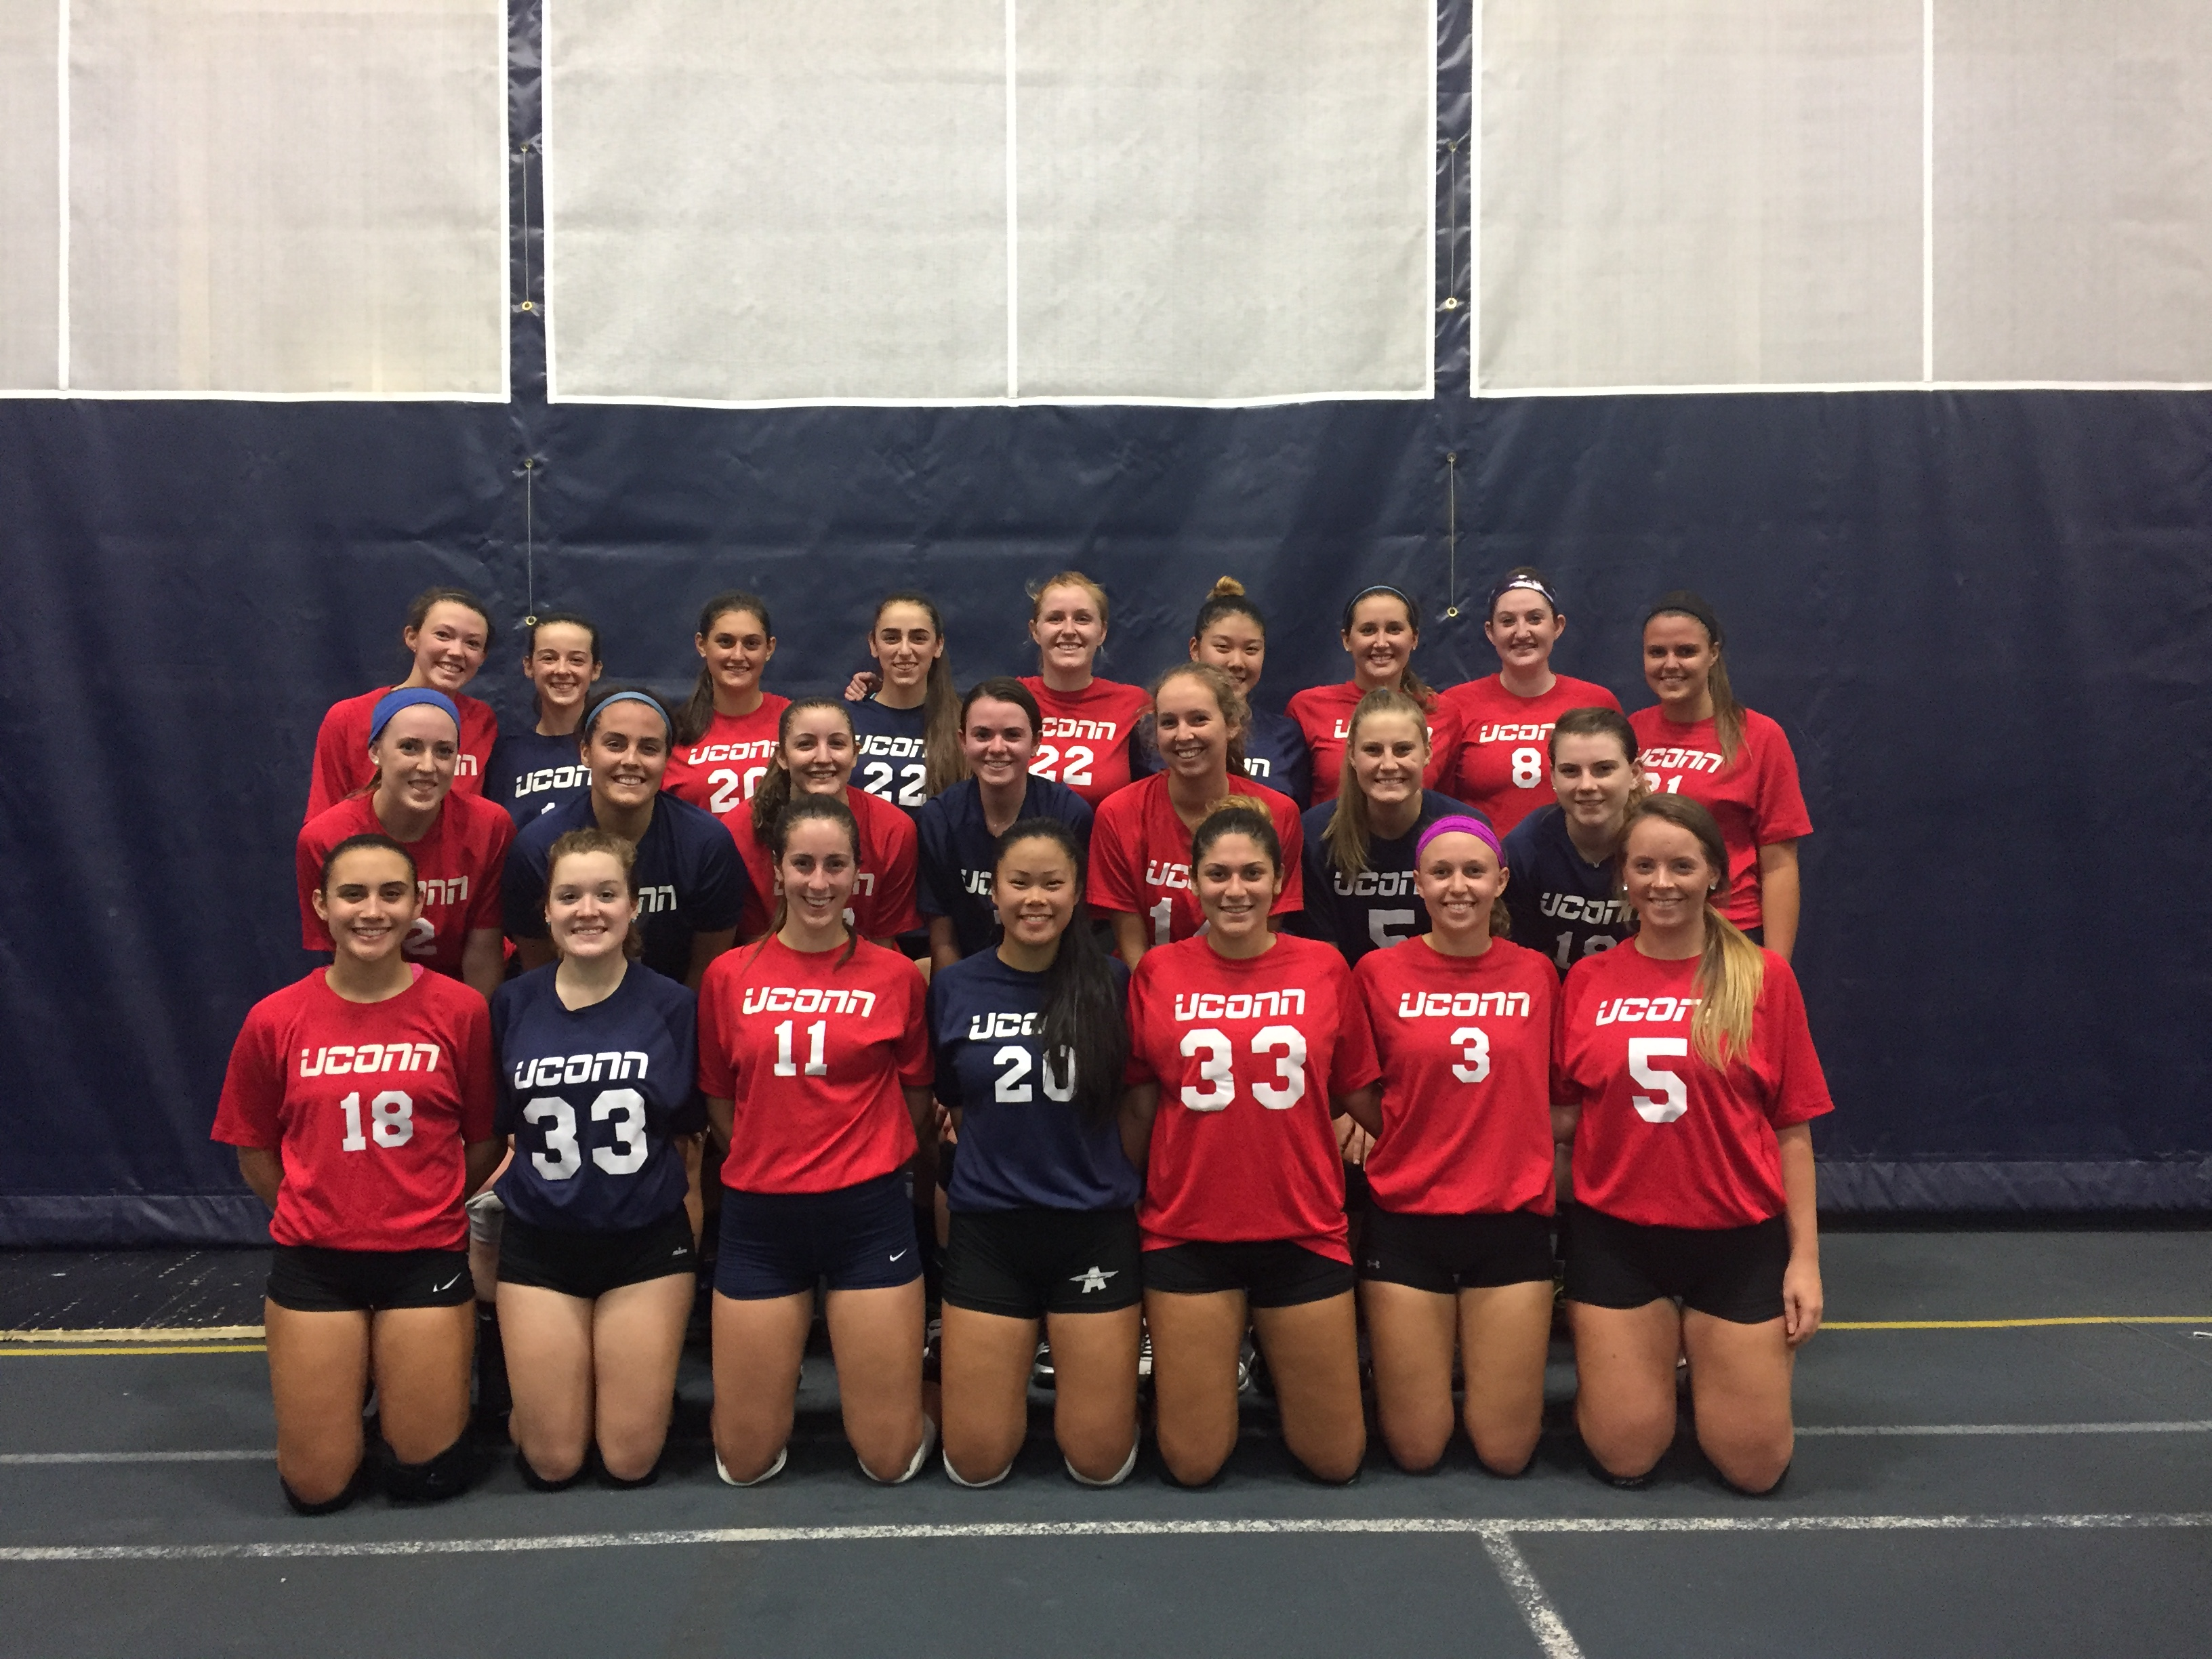 Women's Club Volleyball Team 2016-2017.